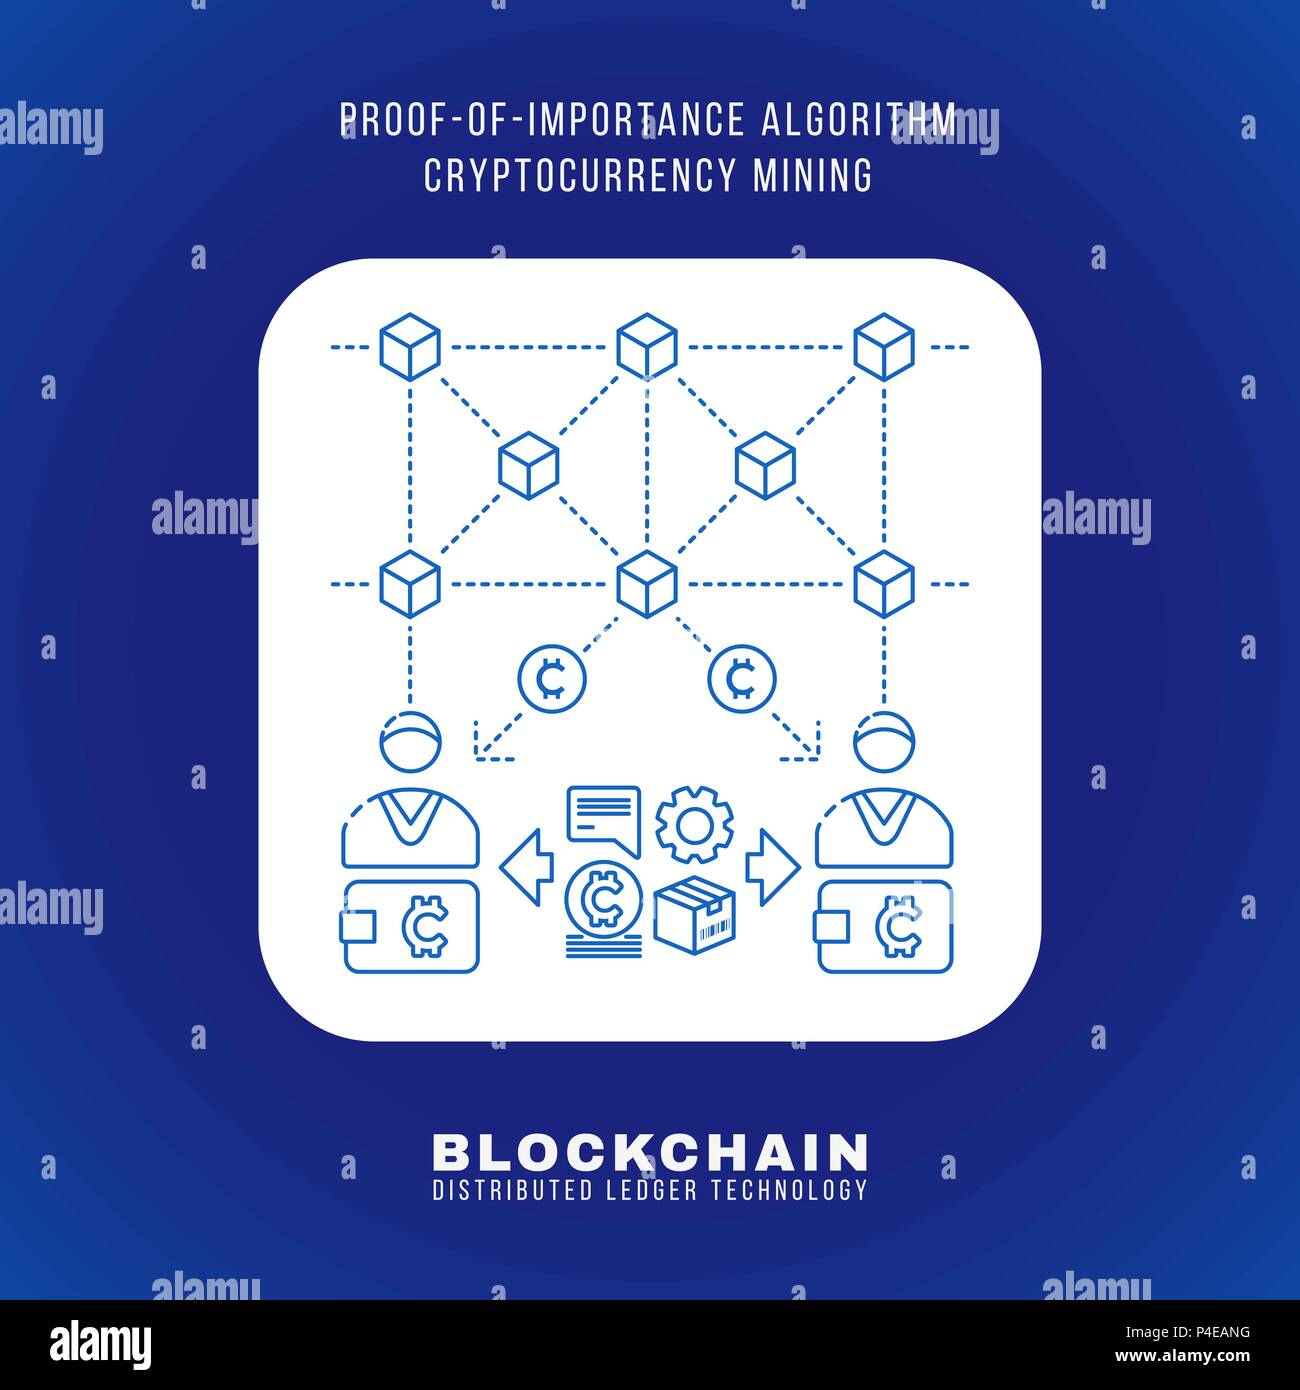 Vector Outline Design Blockchain Proof Of Importance Algorithm Cryptocurrency POI Mining Principle Explain Scheme Illustration White Rounded Square Ic